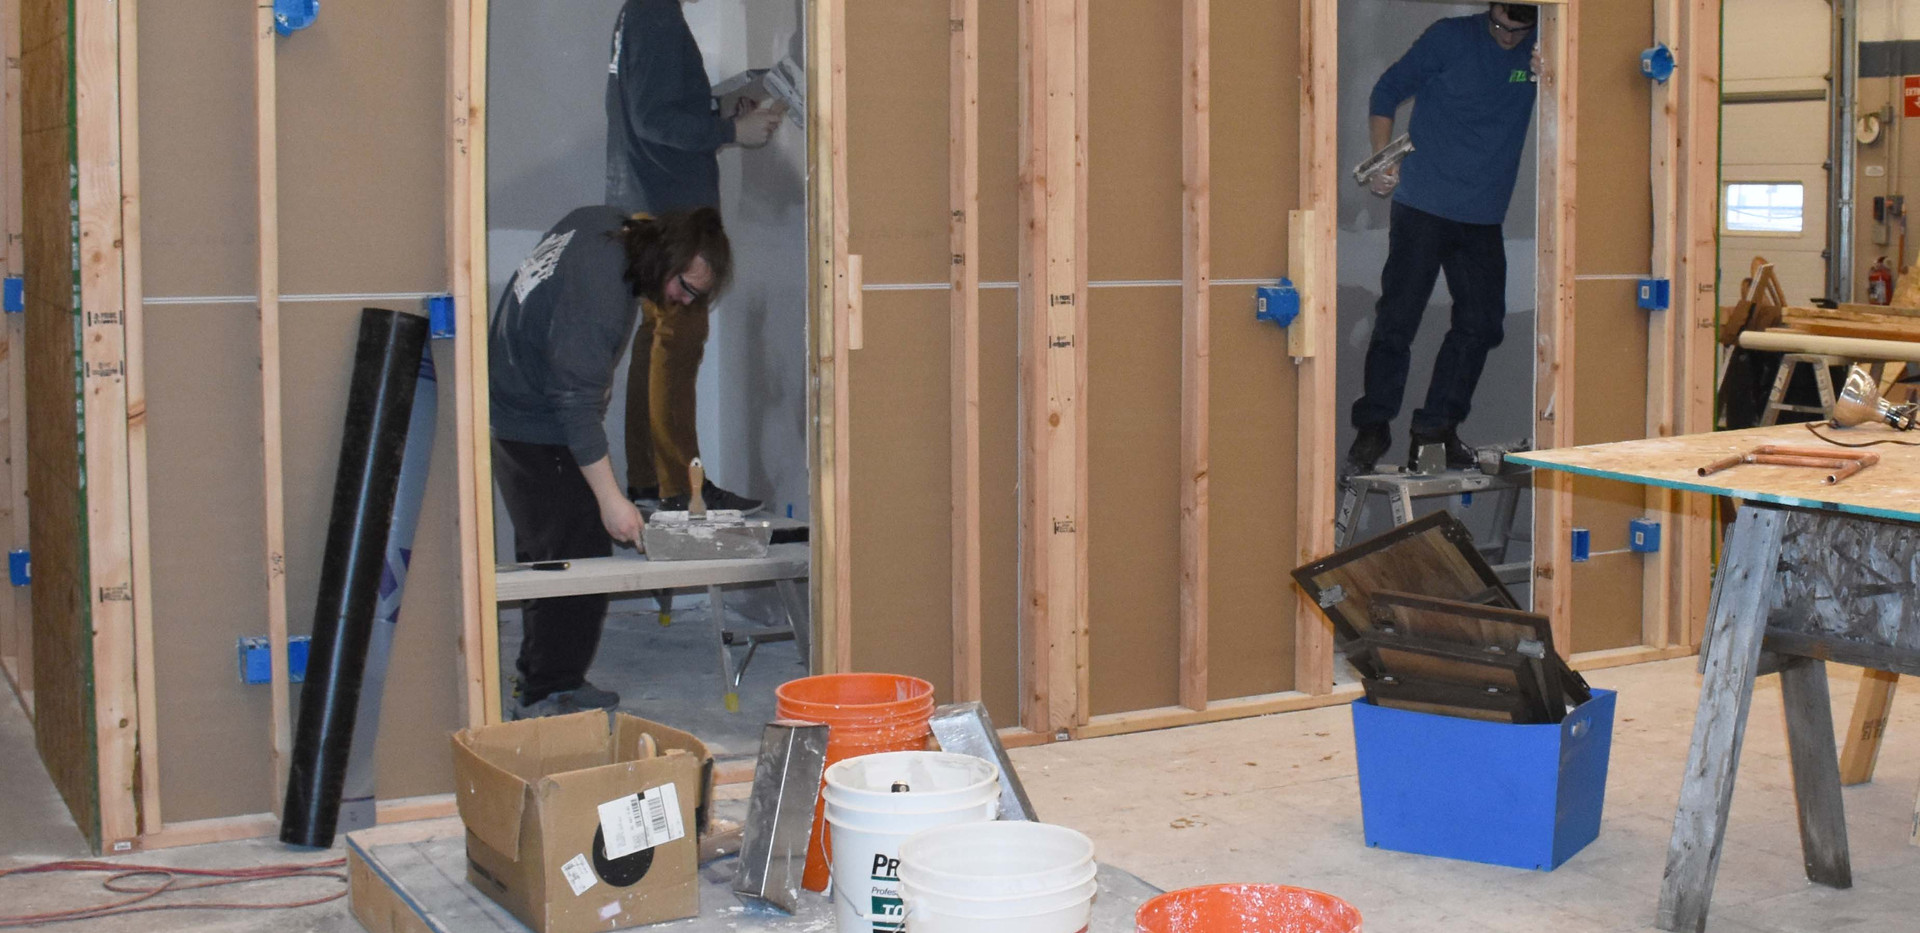 Building Trades Students at work